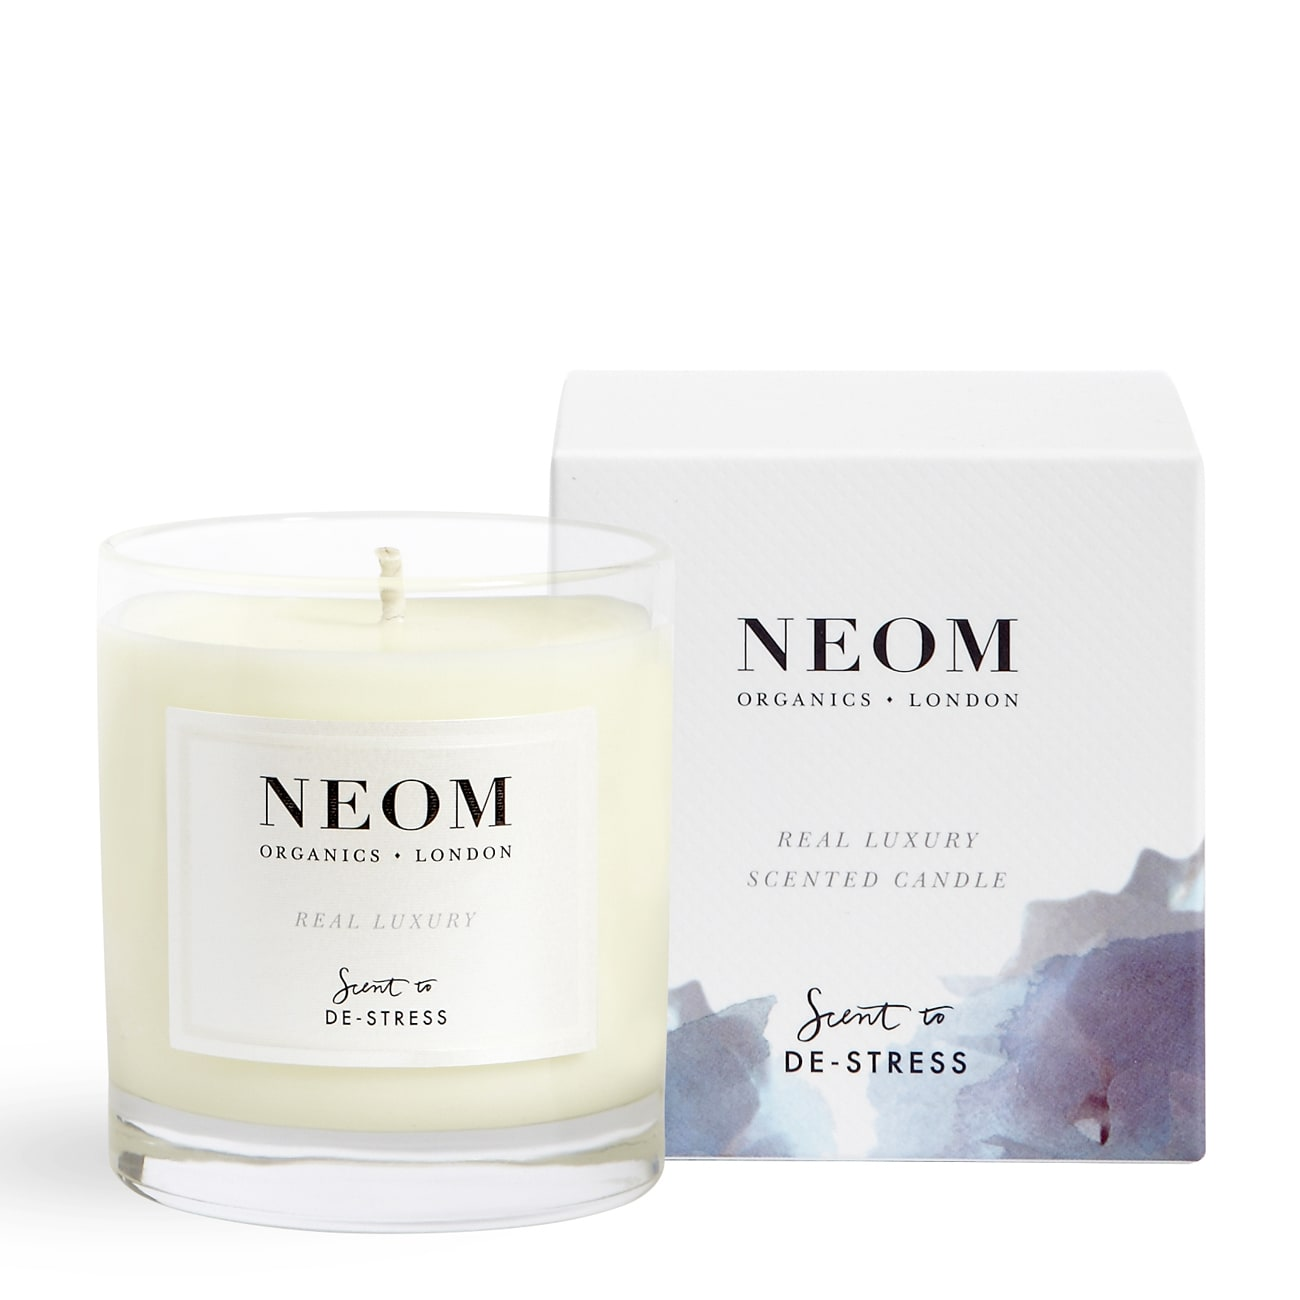 Neom Organics London Real Luxury 1 Wick Scented Candle